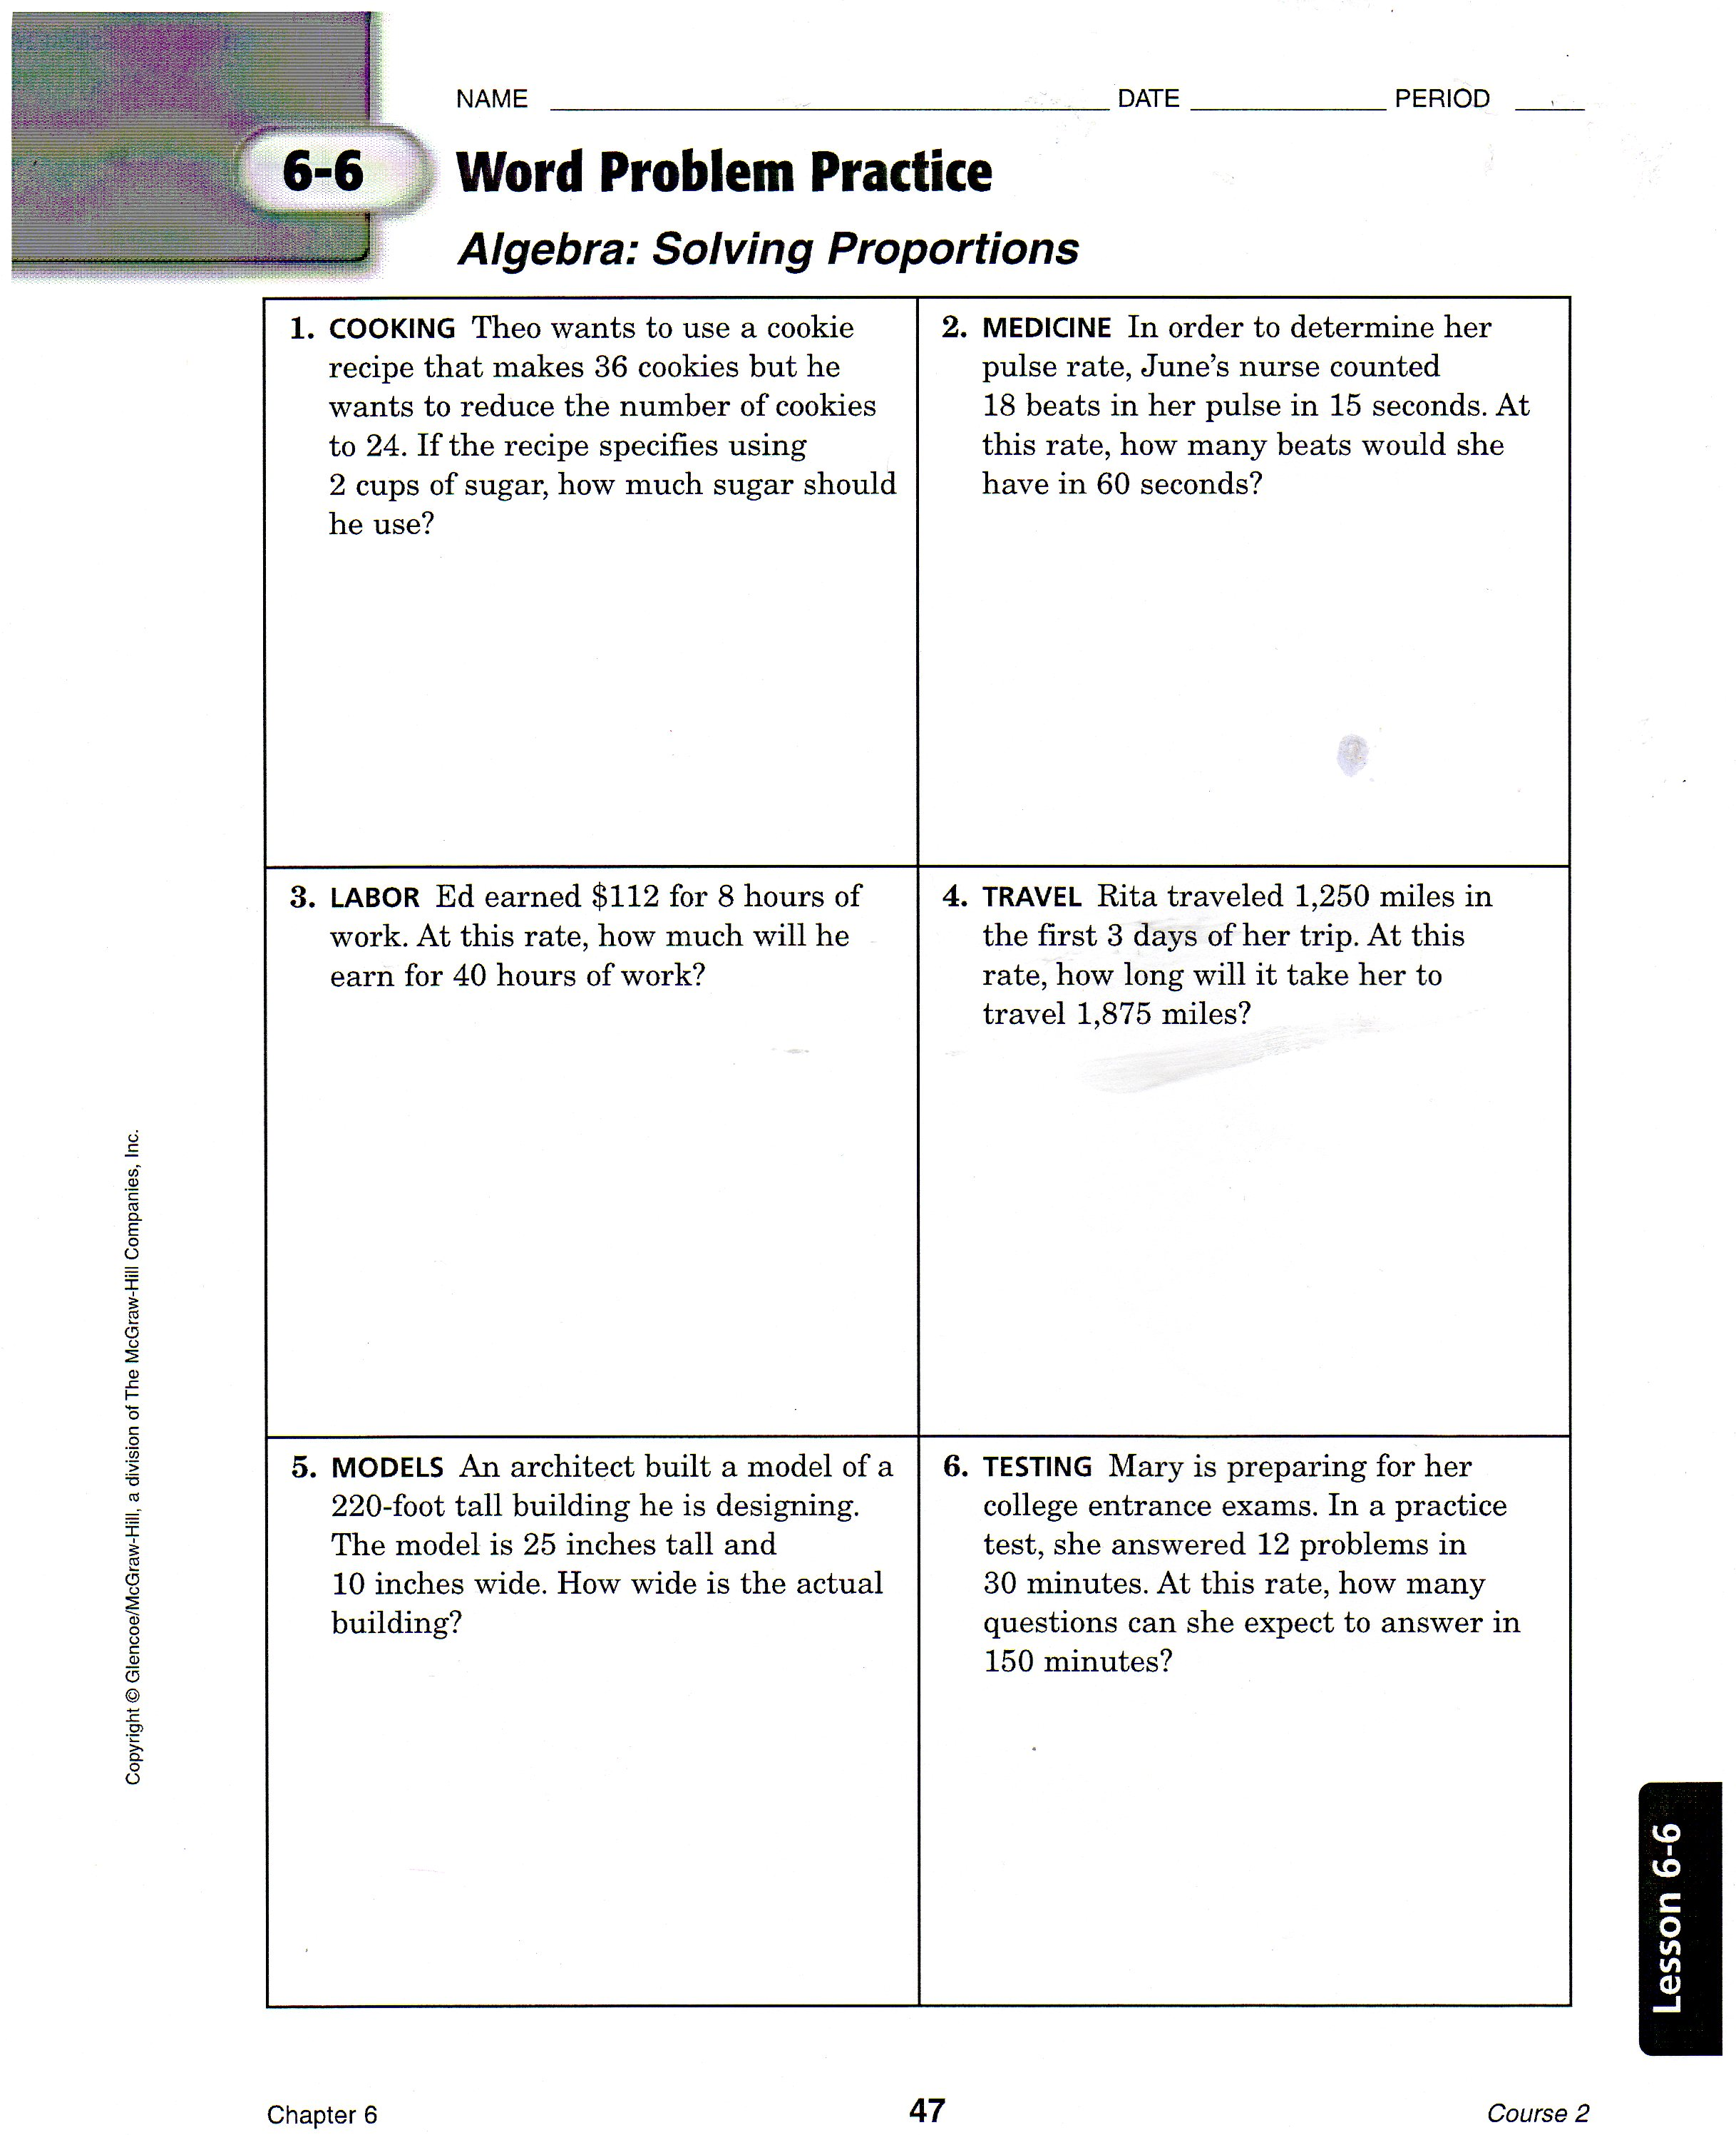 Proportion Word Problems Worksheet 7th Grade With Answers